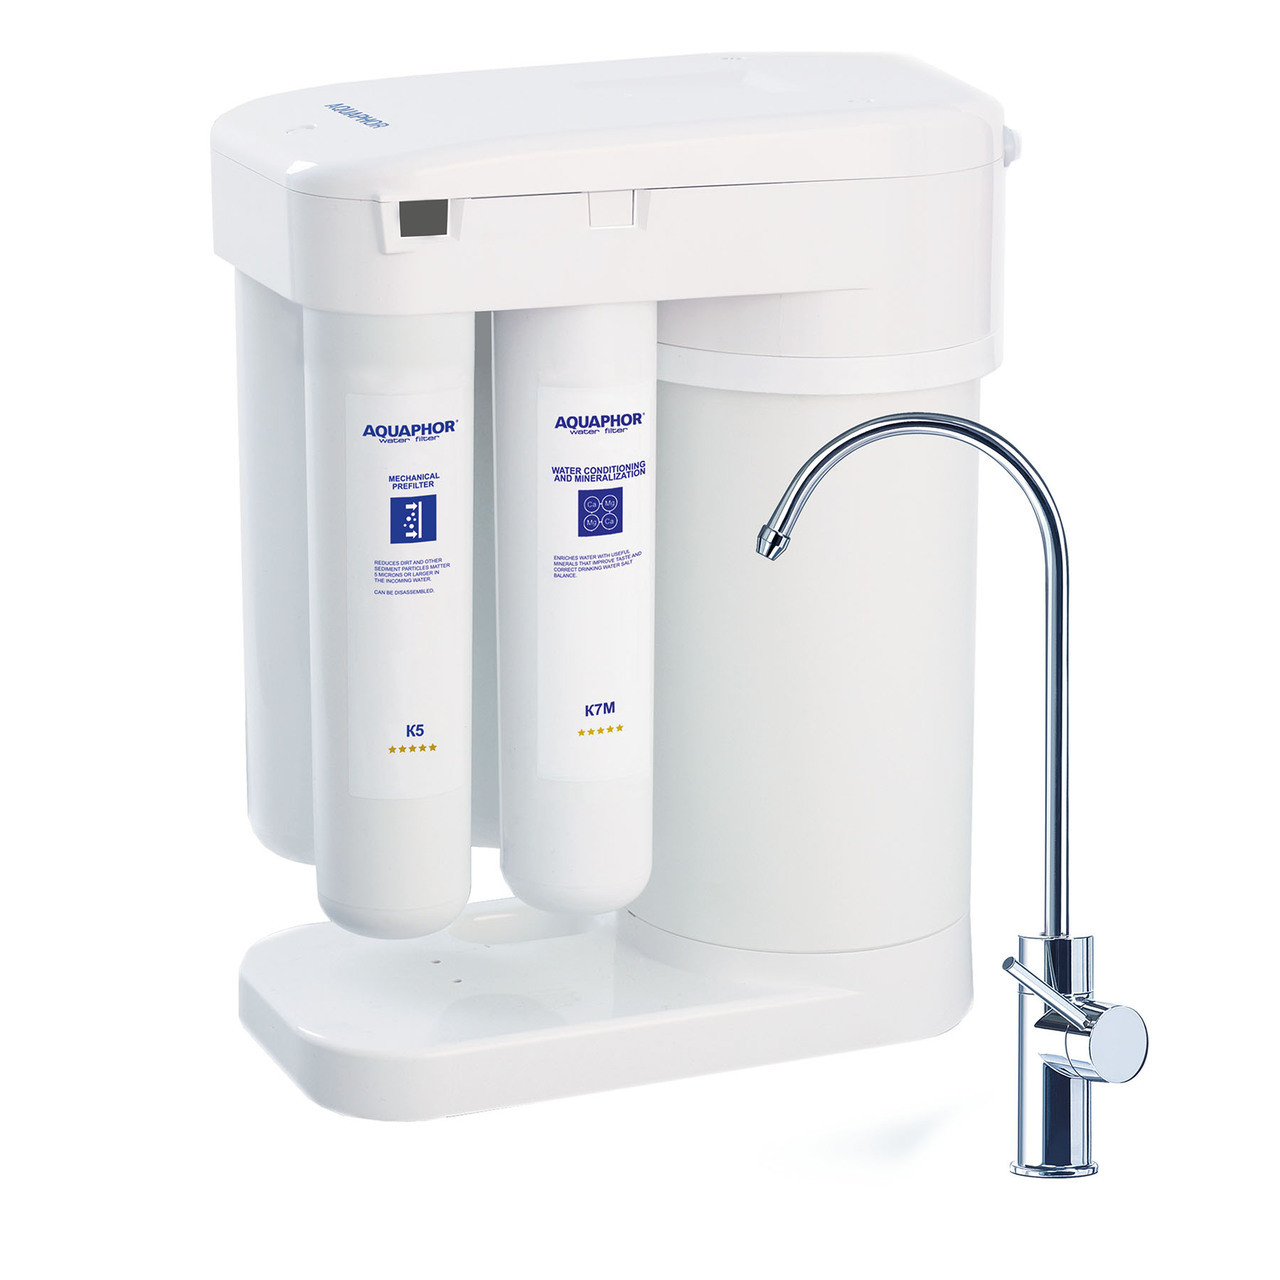 water filter. Aquaphor RO101 Reverse Osmosis Water Filtration System Filter